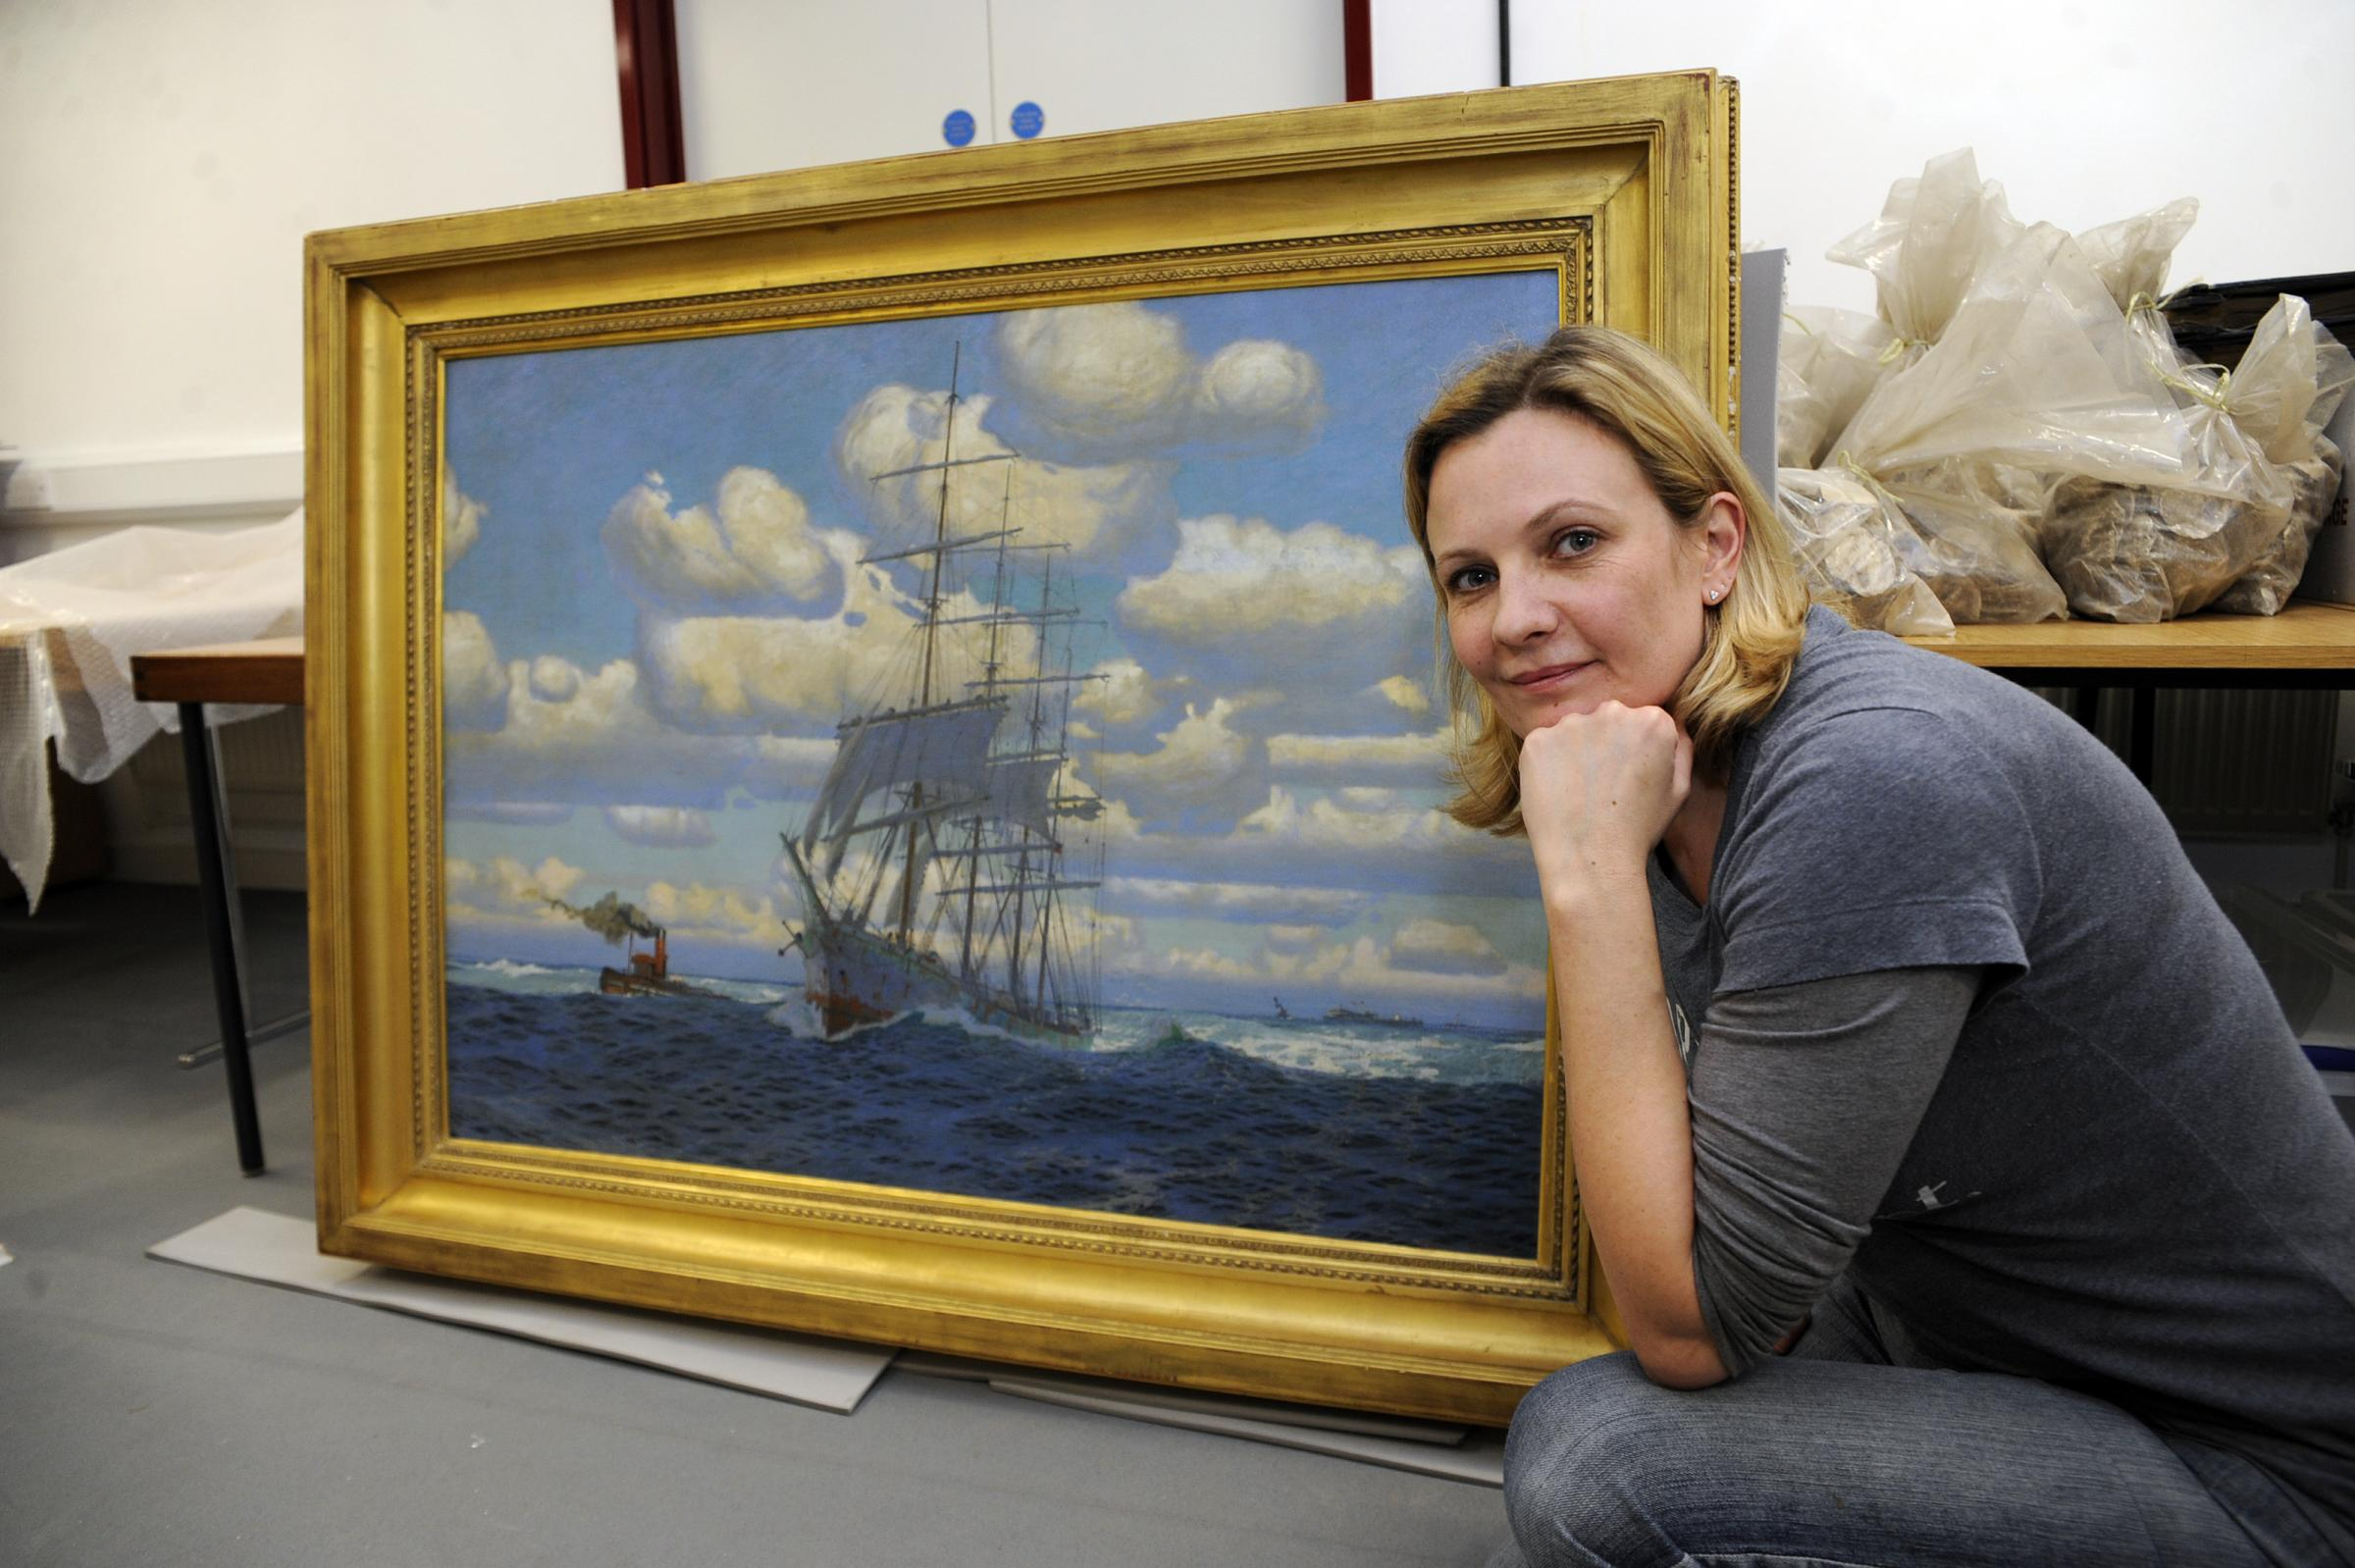 Gallery given sought after painting of the town's past